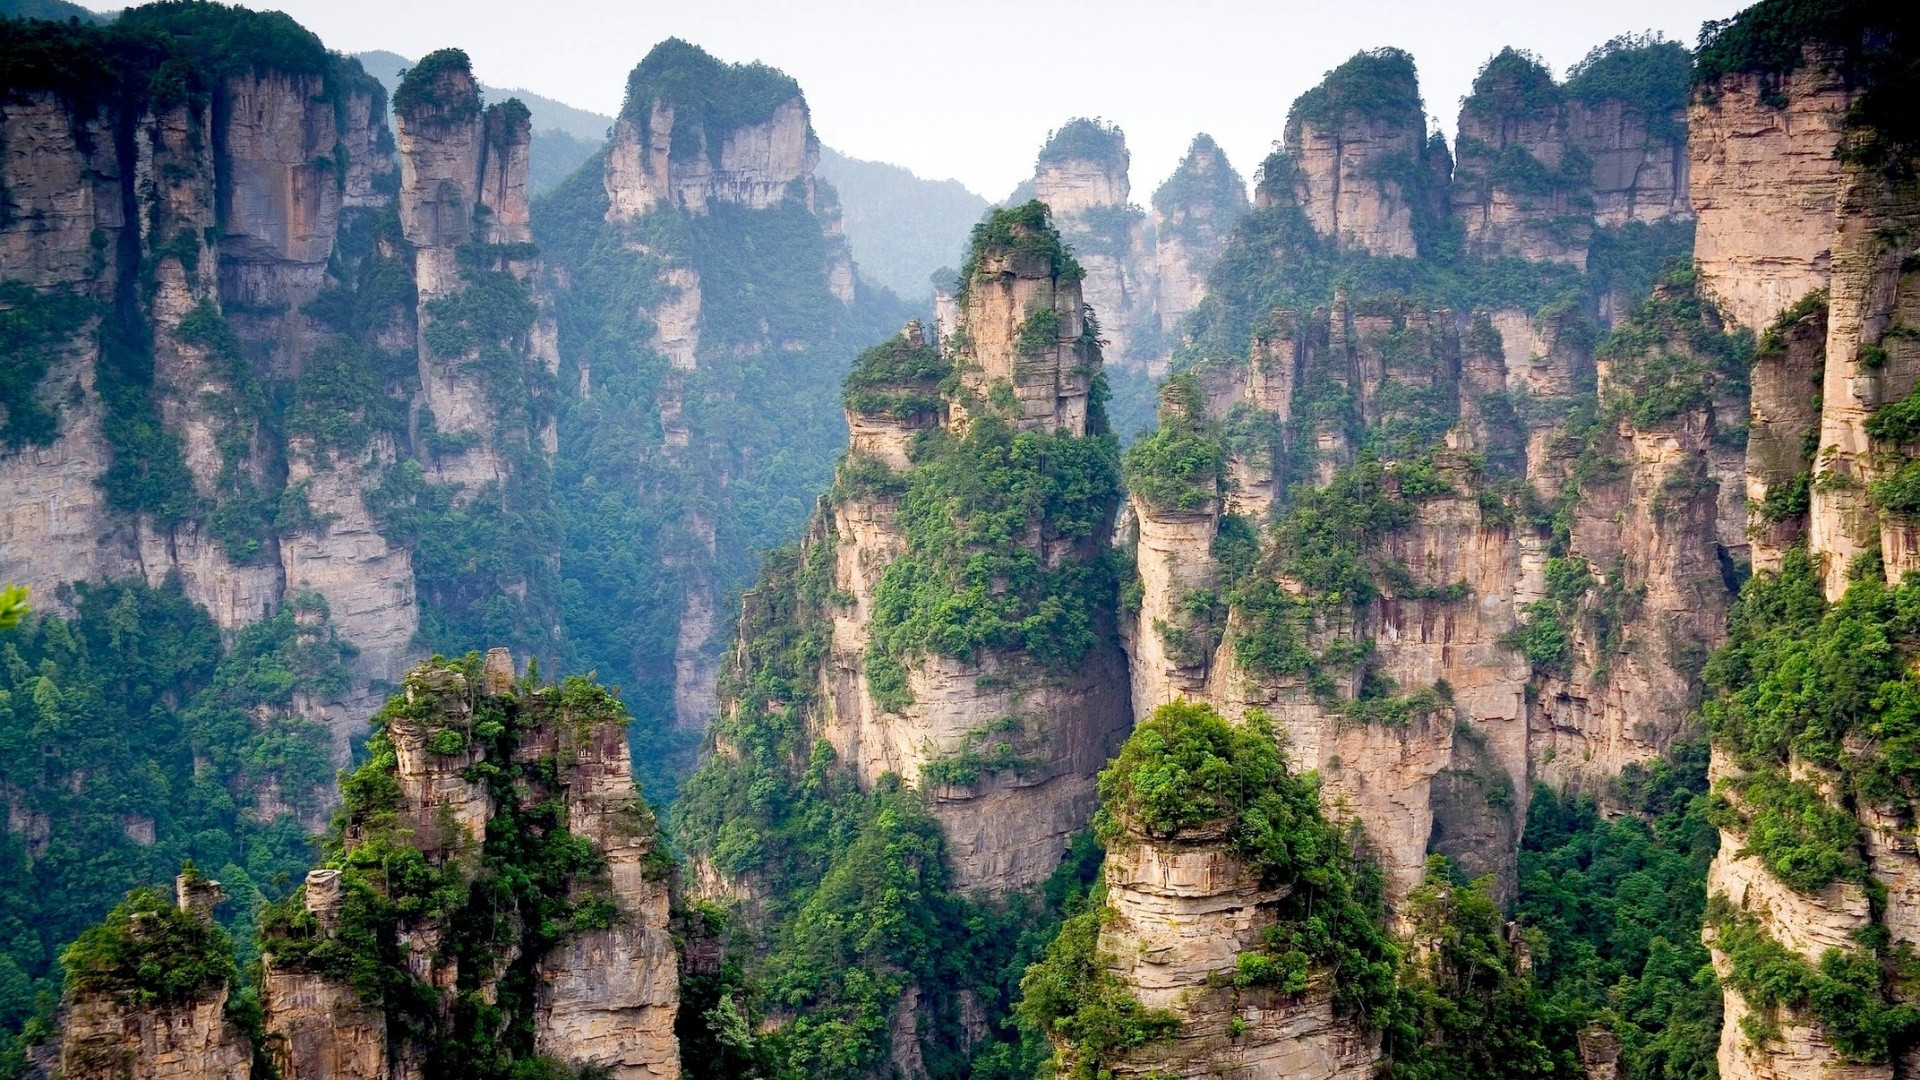 1 Tianzi Mountains in China